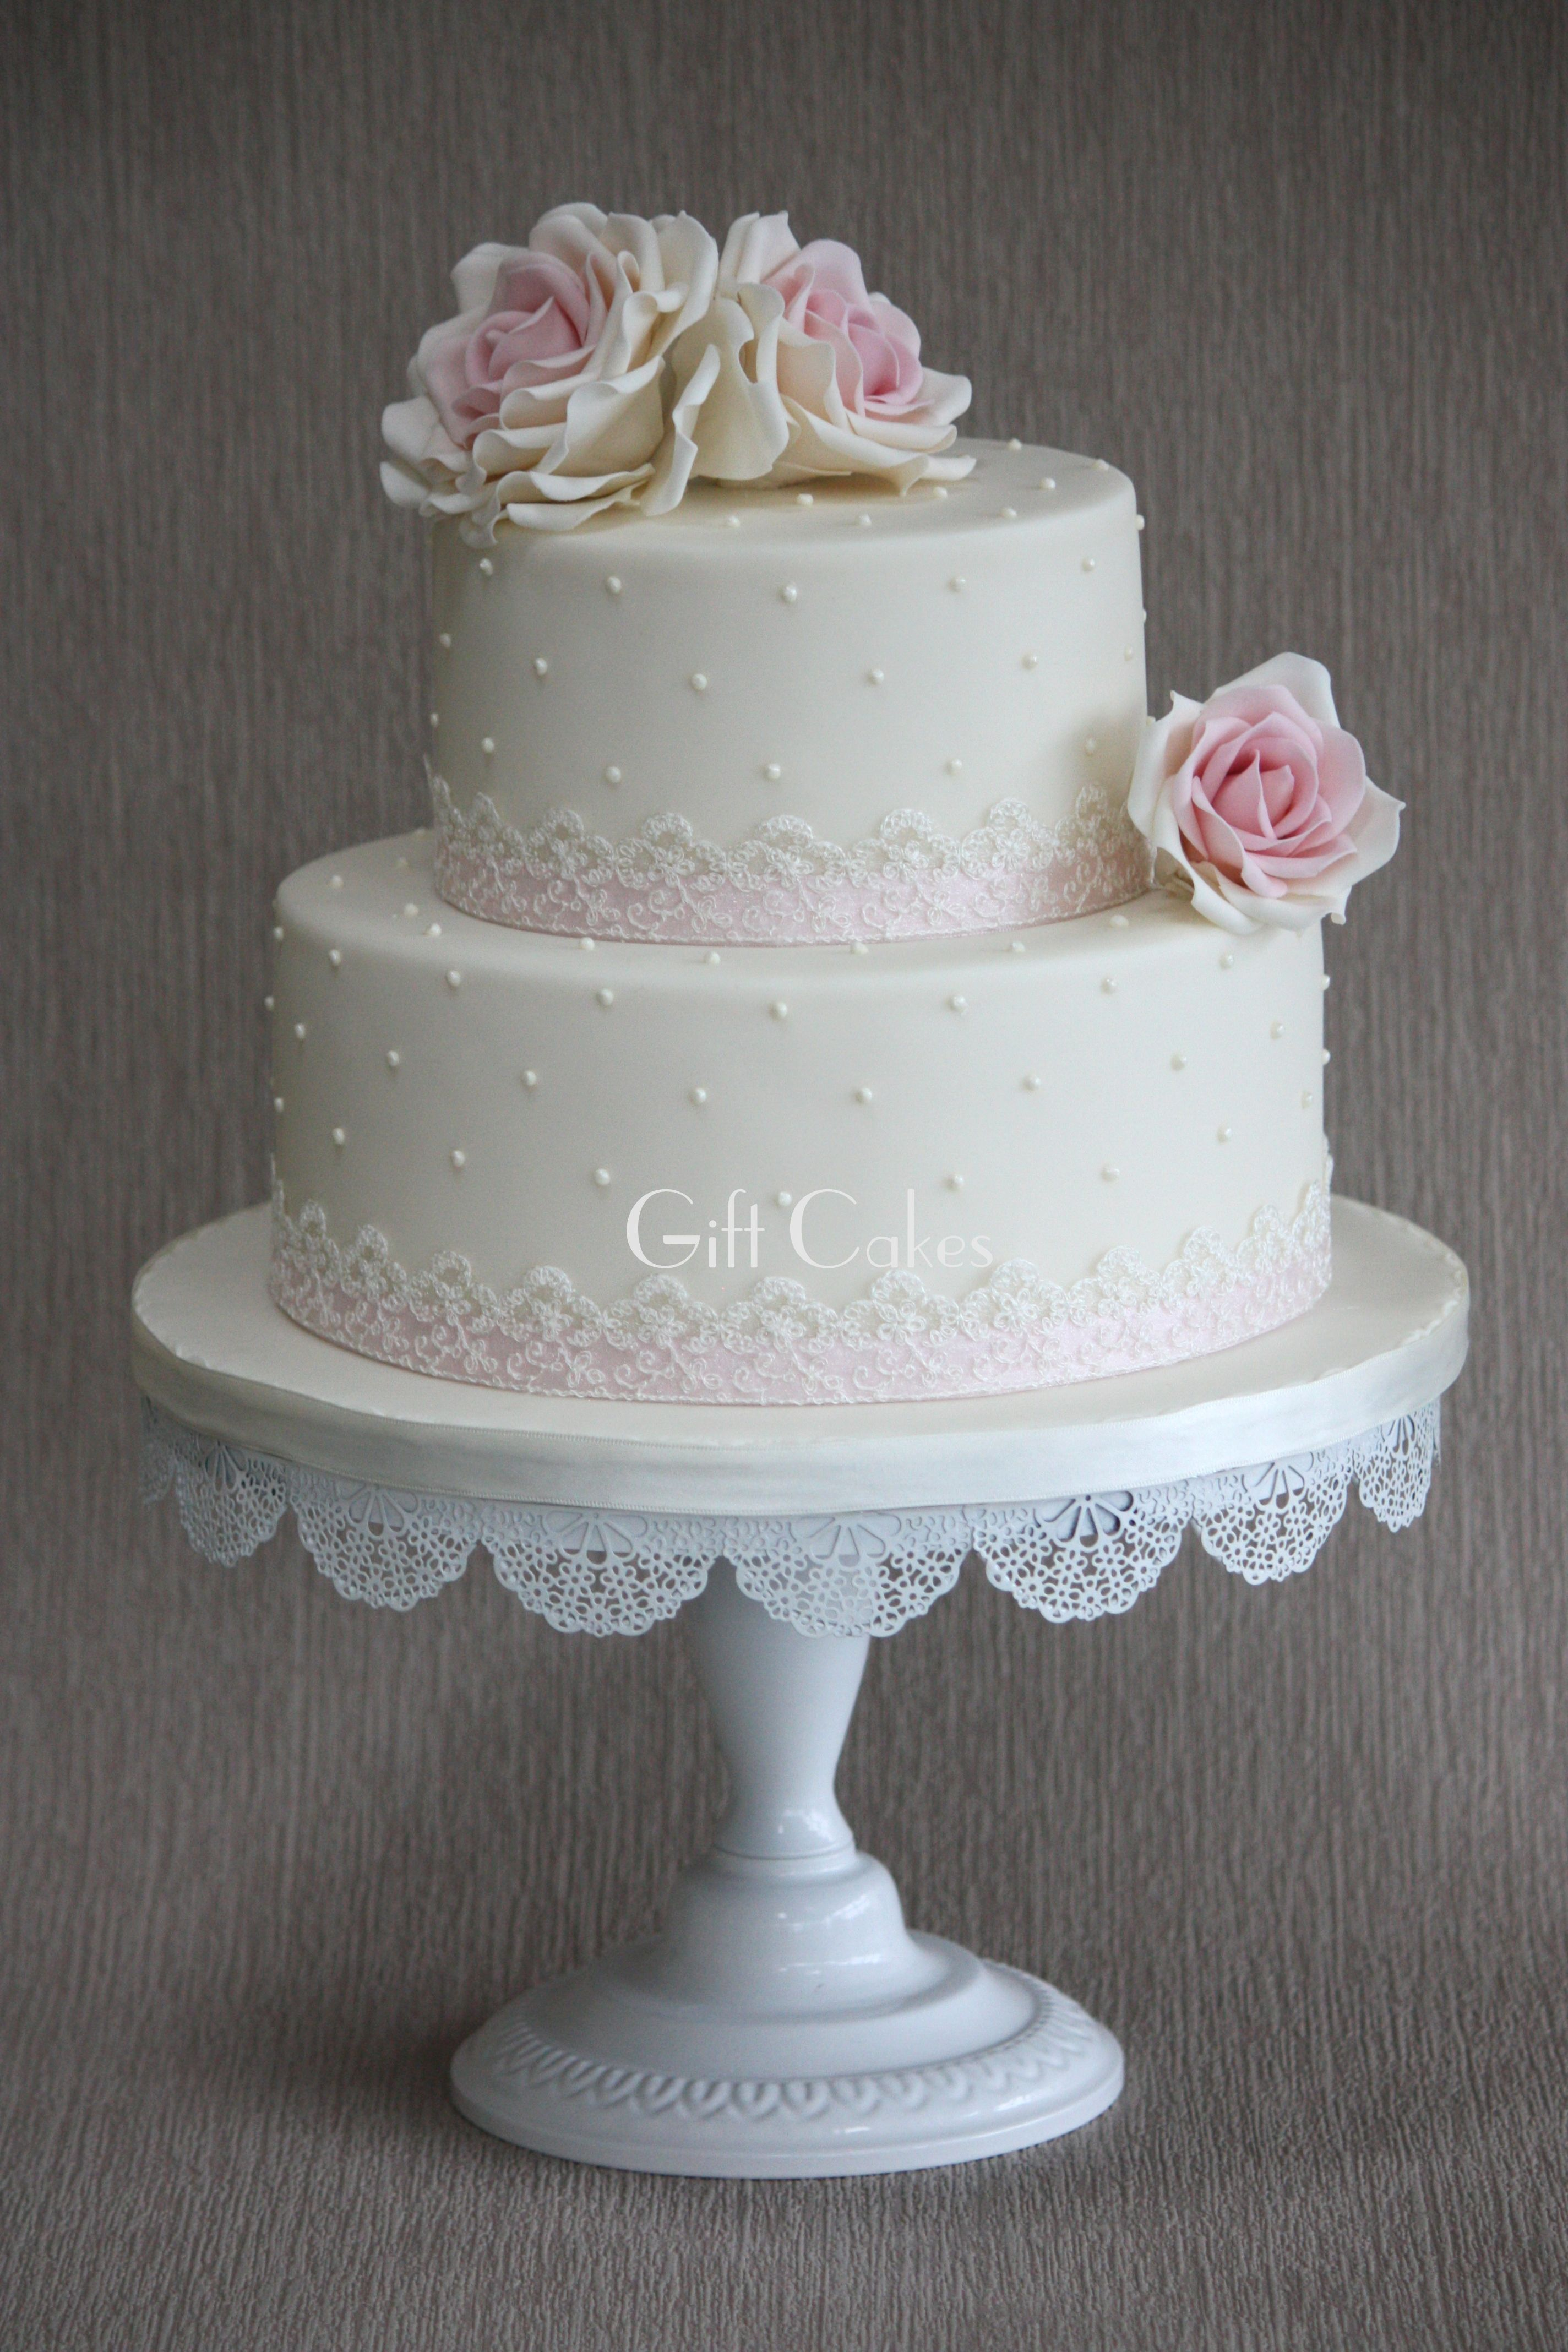 Wedding Cakes Two Tier With Flowers Dimonties Google Search - 2 Tier Wedding Cake Photos